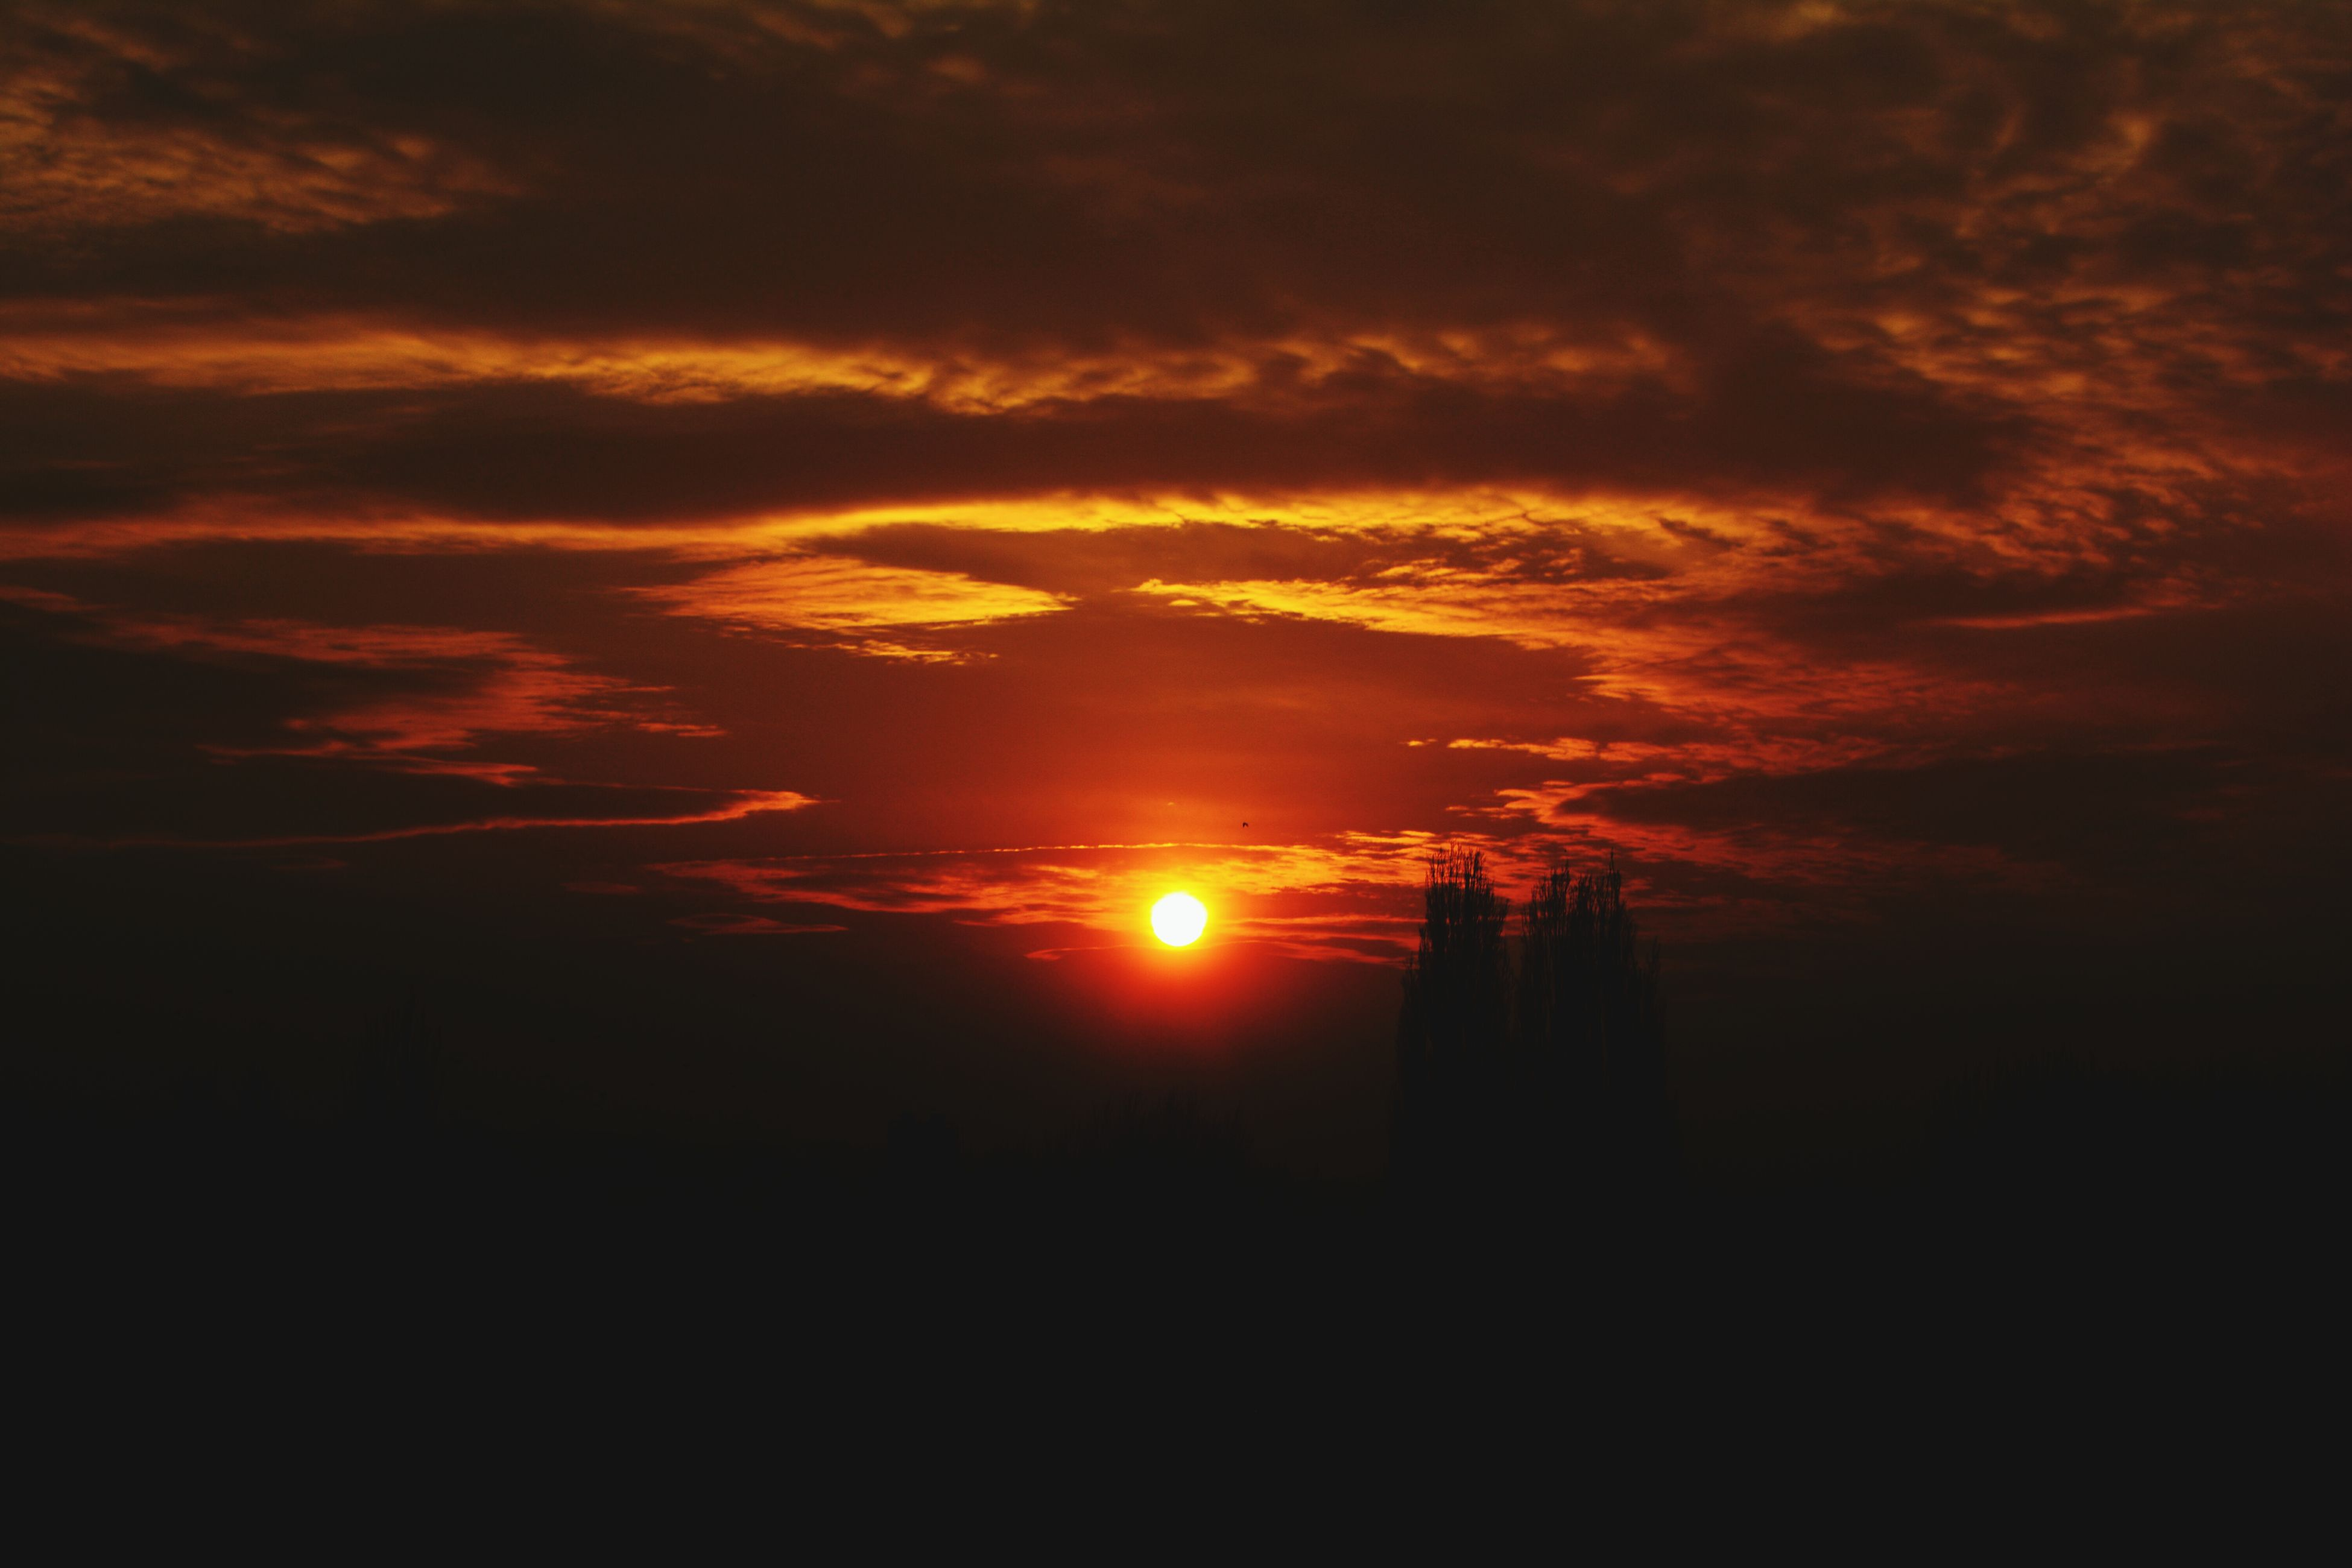 sunset, silhouette, orange color, sky, scenics, beauty in nature, sun, tranquil scene, tranquility, cloud - sky, idyllic, dramatic sky, nature, cloud, dark, cloudy, low angle view, moody sky, sunlight, atmospheric mood